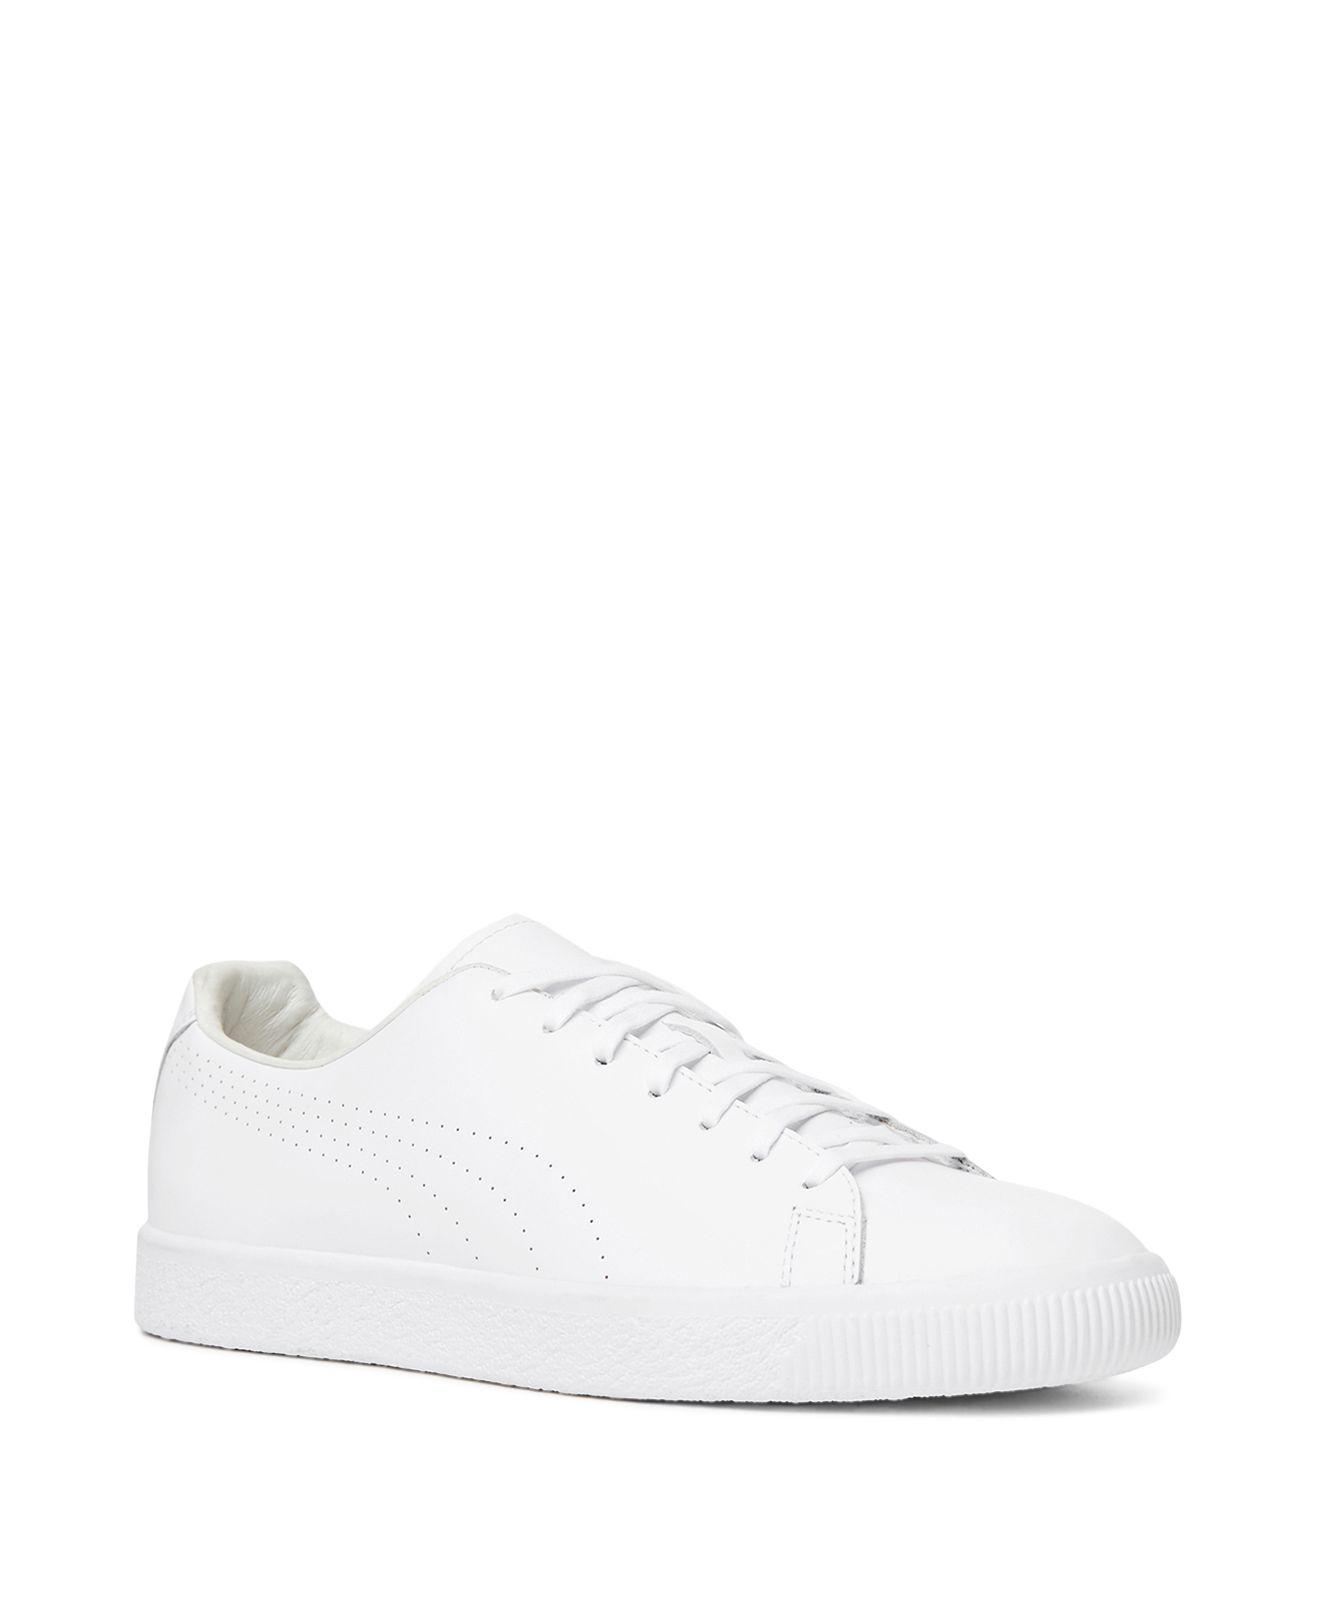 wholesale dealer 42ee7 78f3e The Kooples X Puma Clyde Lace Up Sneakers in White - Lyst